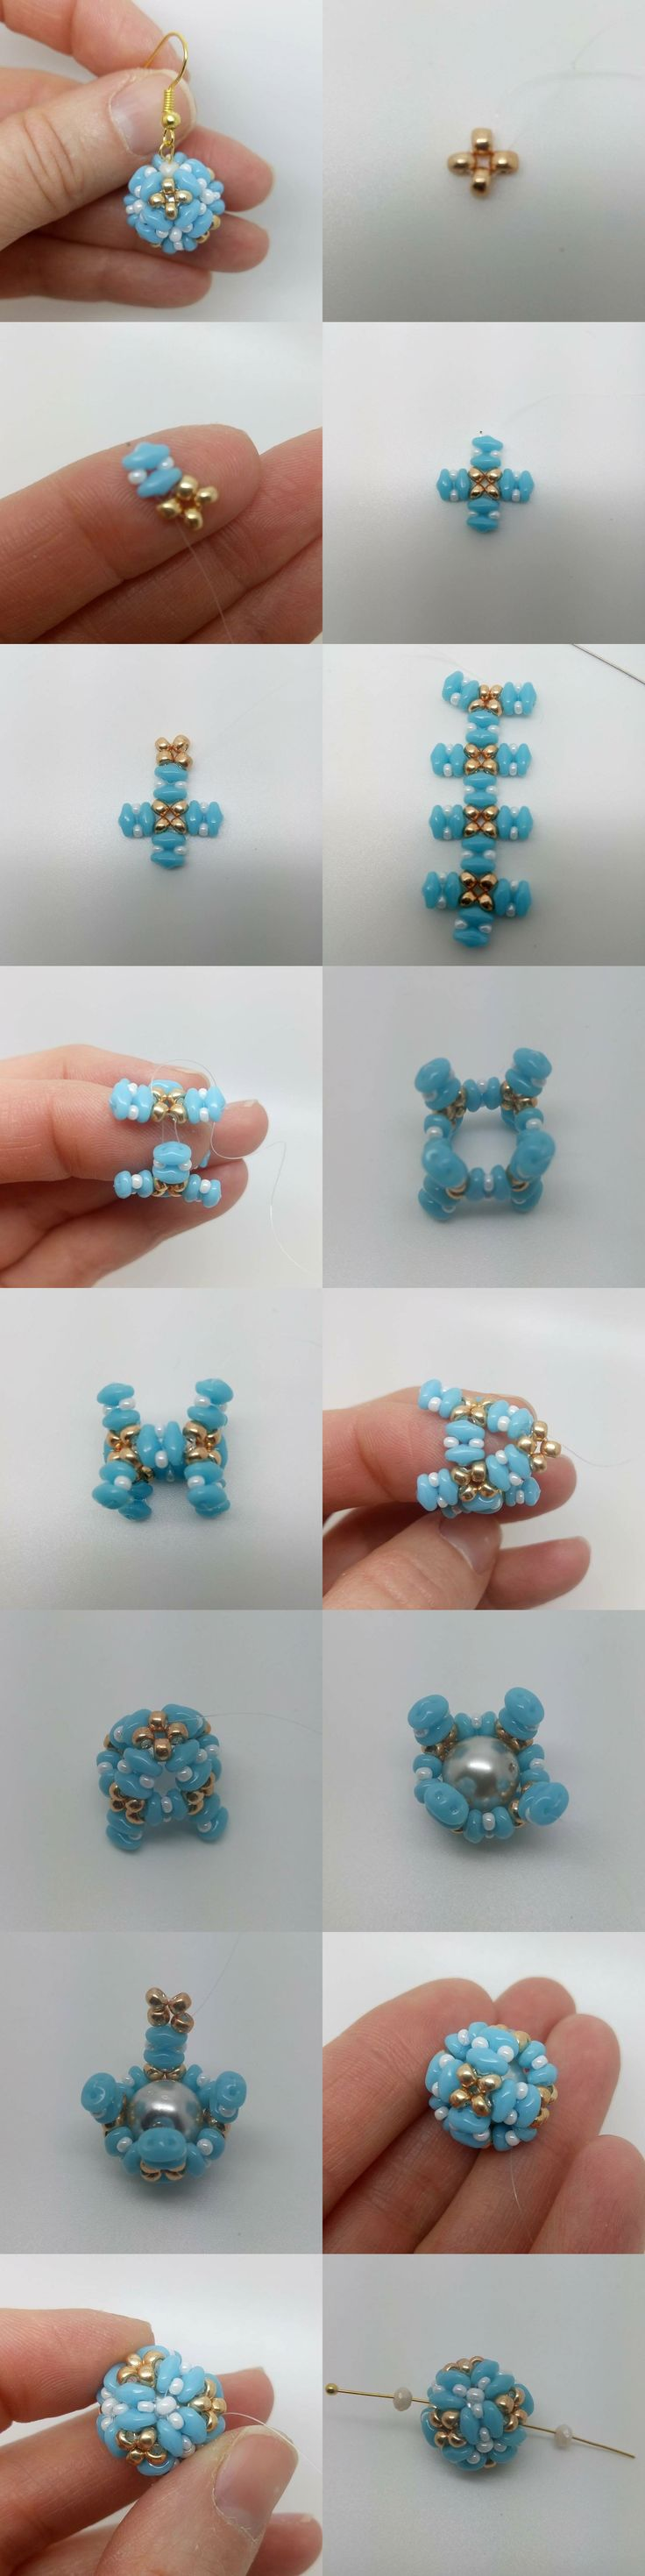 finally something to do with big beads. cover them in small ones! *\o/*